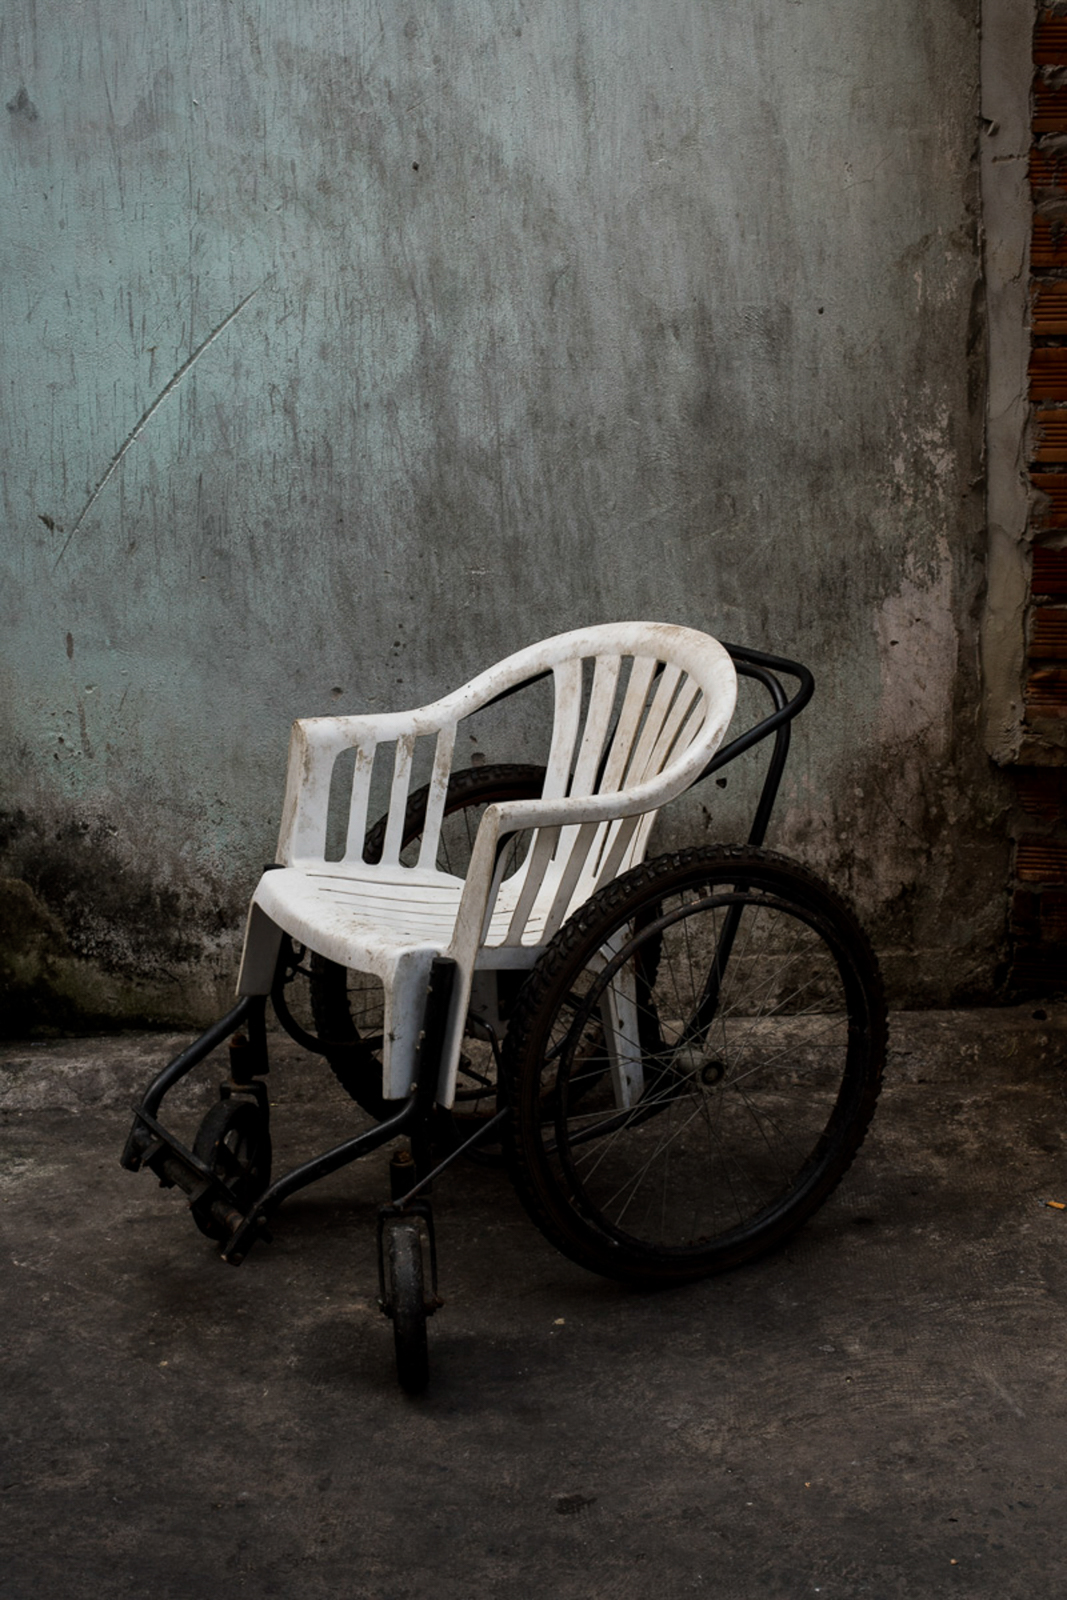 The Vietnamese community has found a way to support each other when there is very little official support available. This DIY wheelchair is made out of a plastic chair.